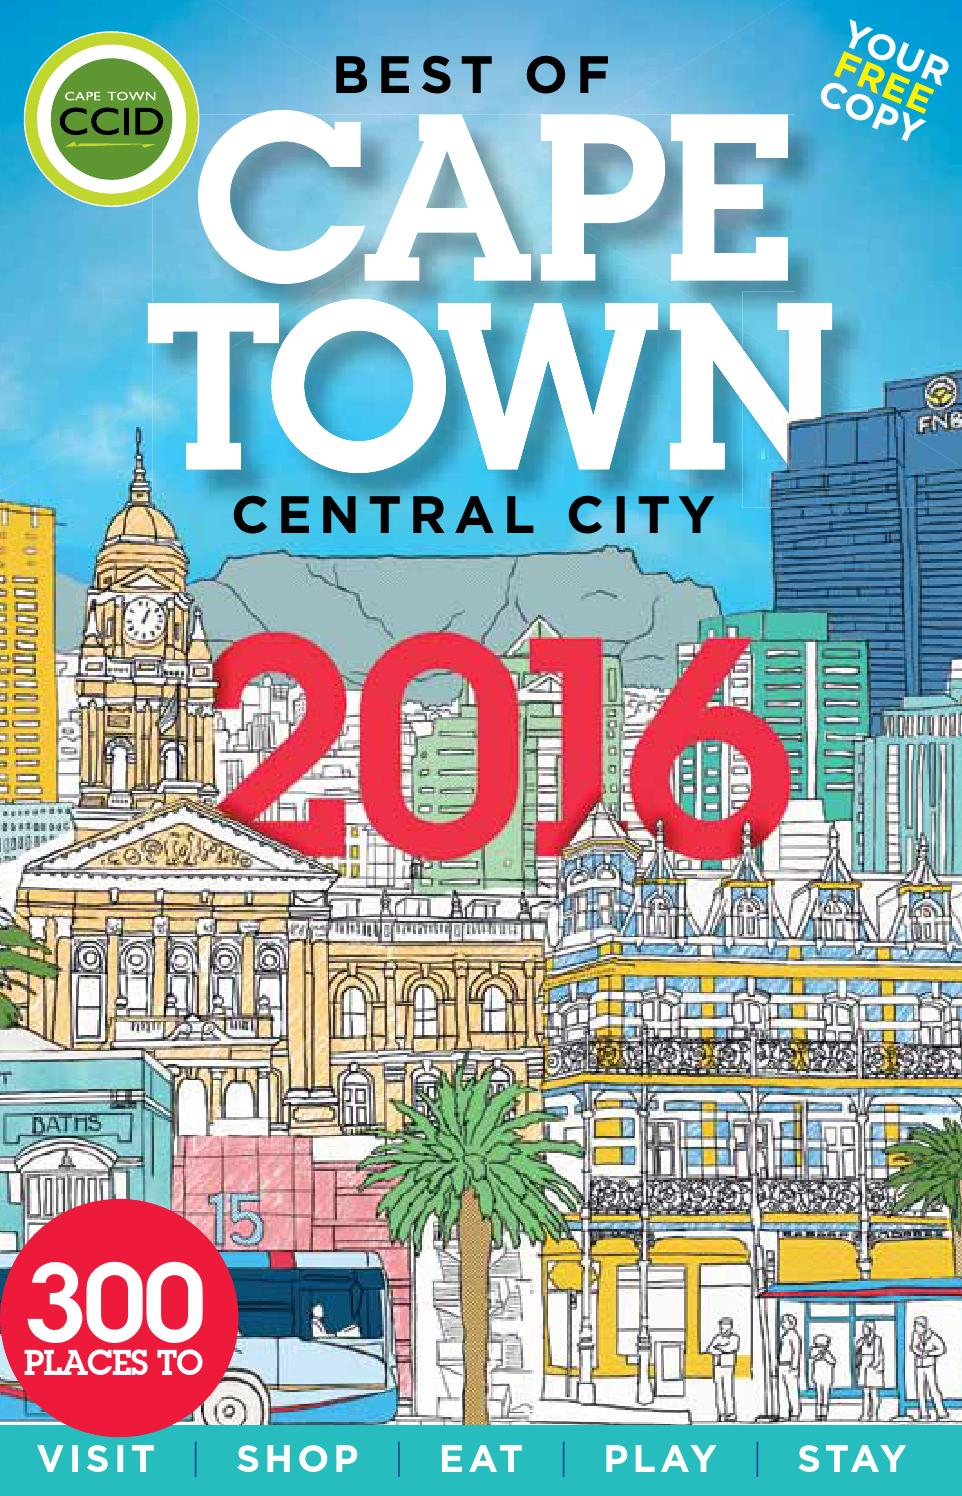 Best Of Cape Town Central City Guide 2016